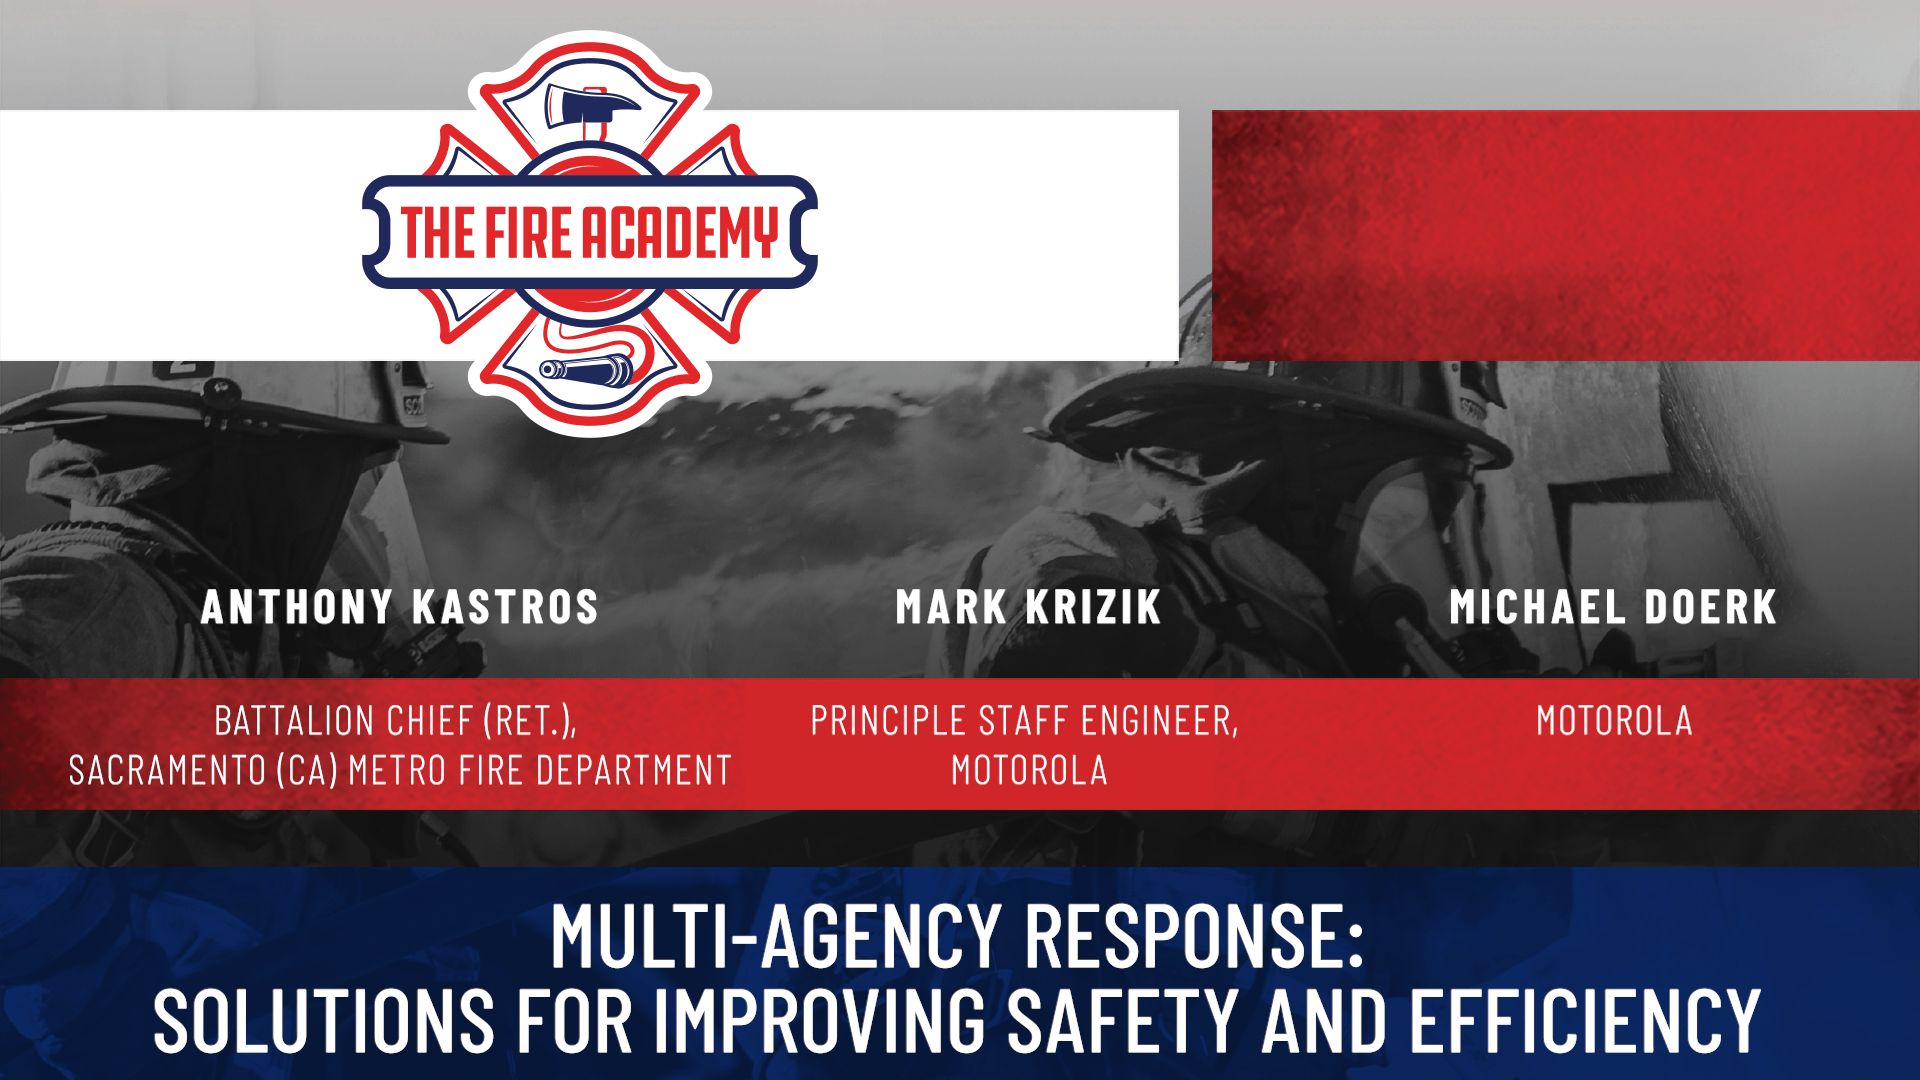 Multi-Agency Response: Solutions for Improving Safety and Efficiency